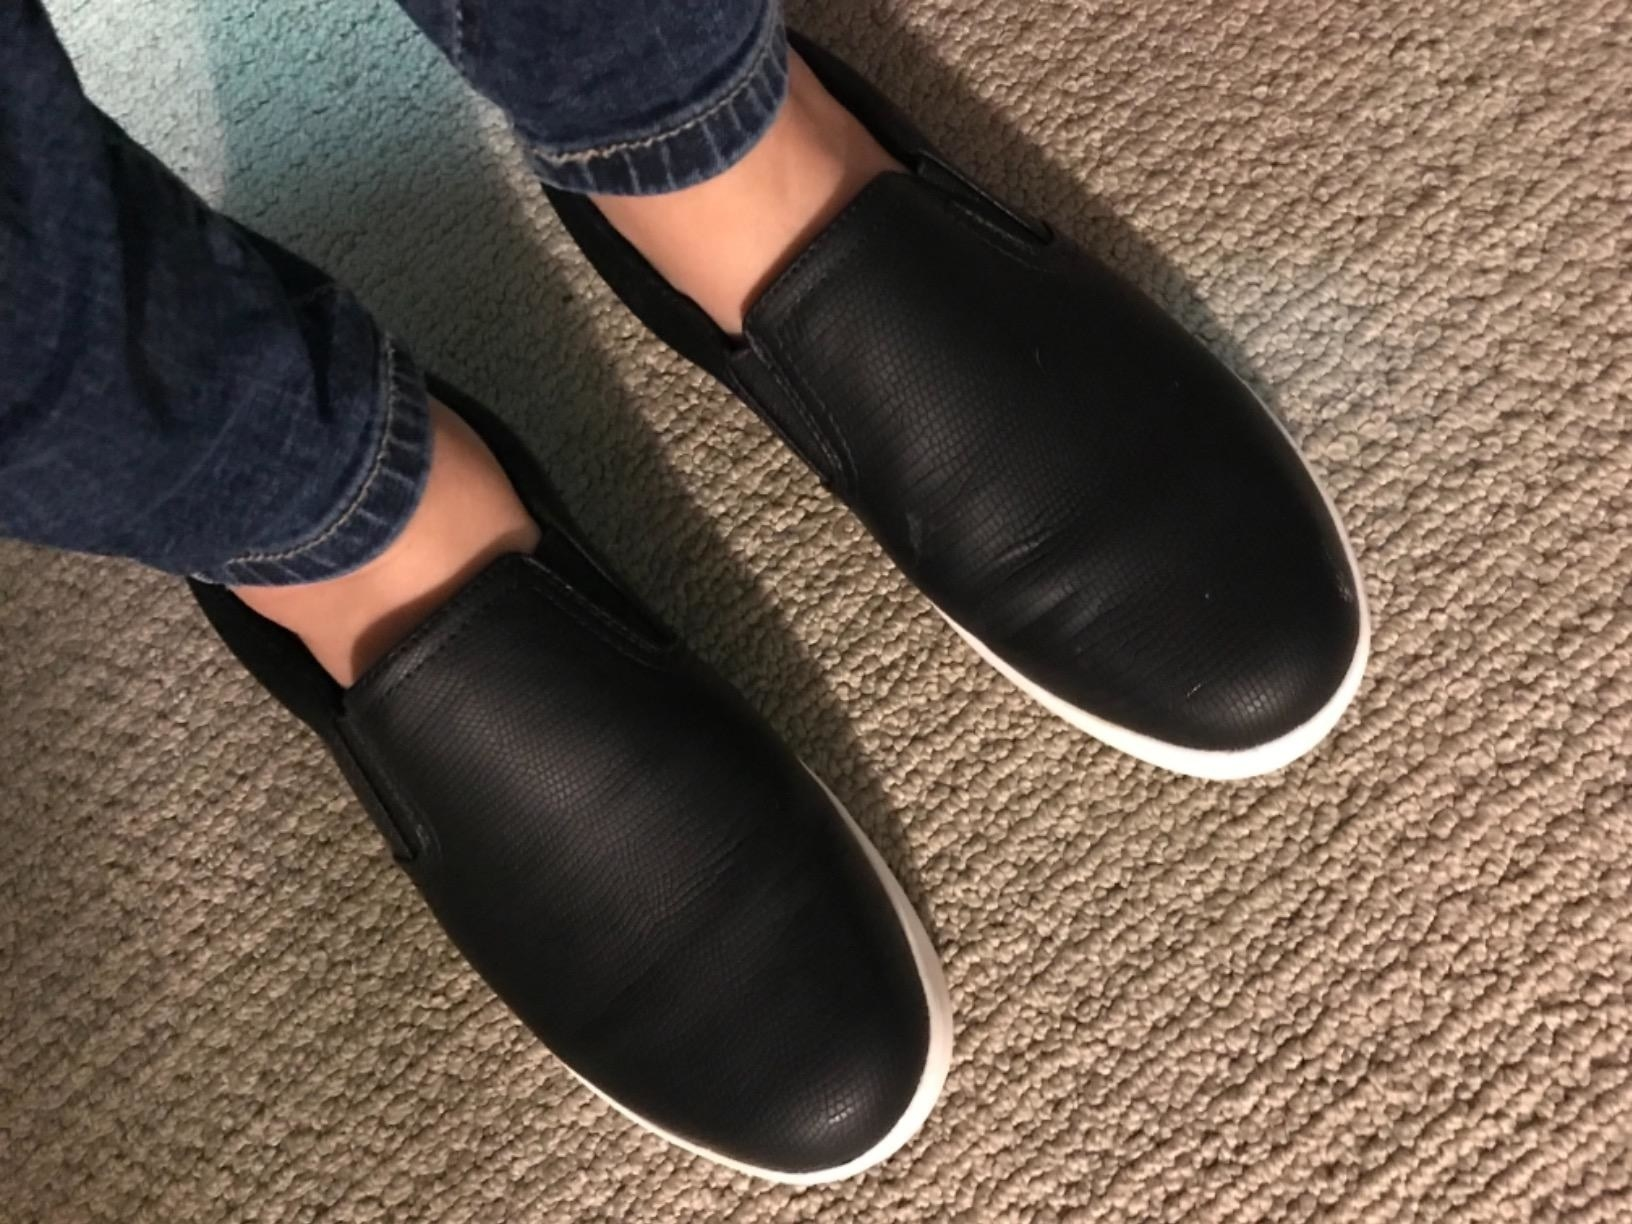 Reviewer wearing the slip-on sneakers in black